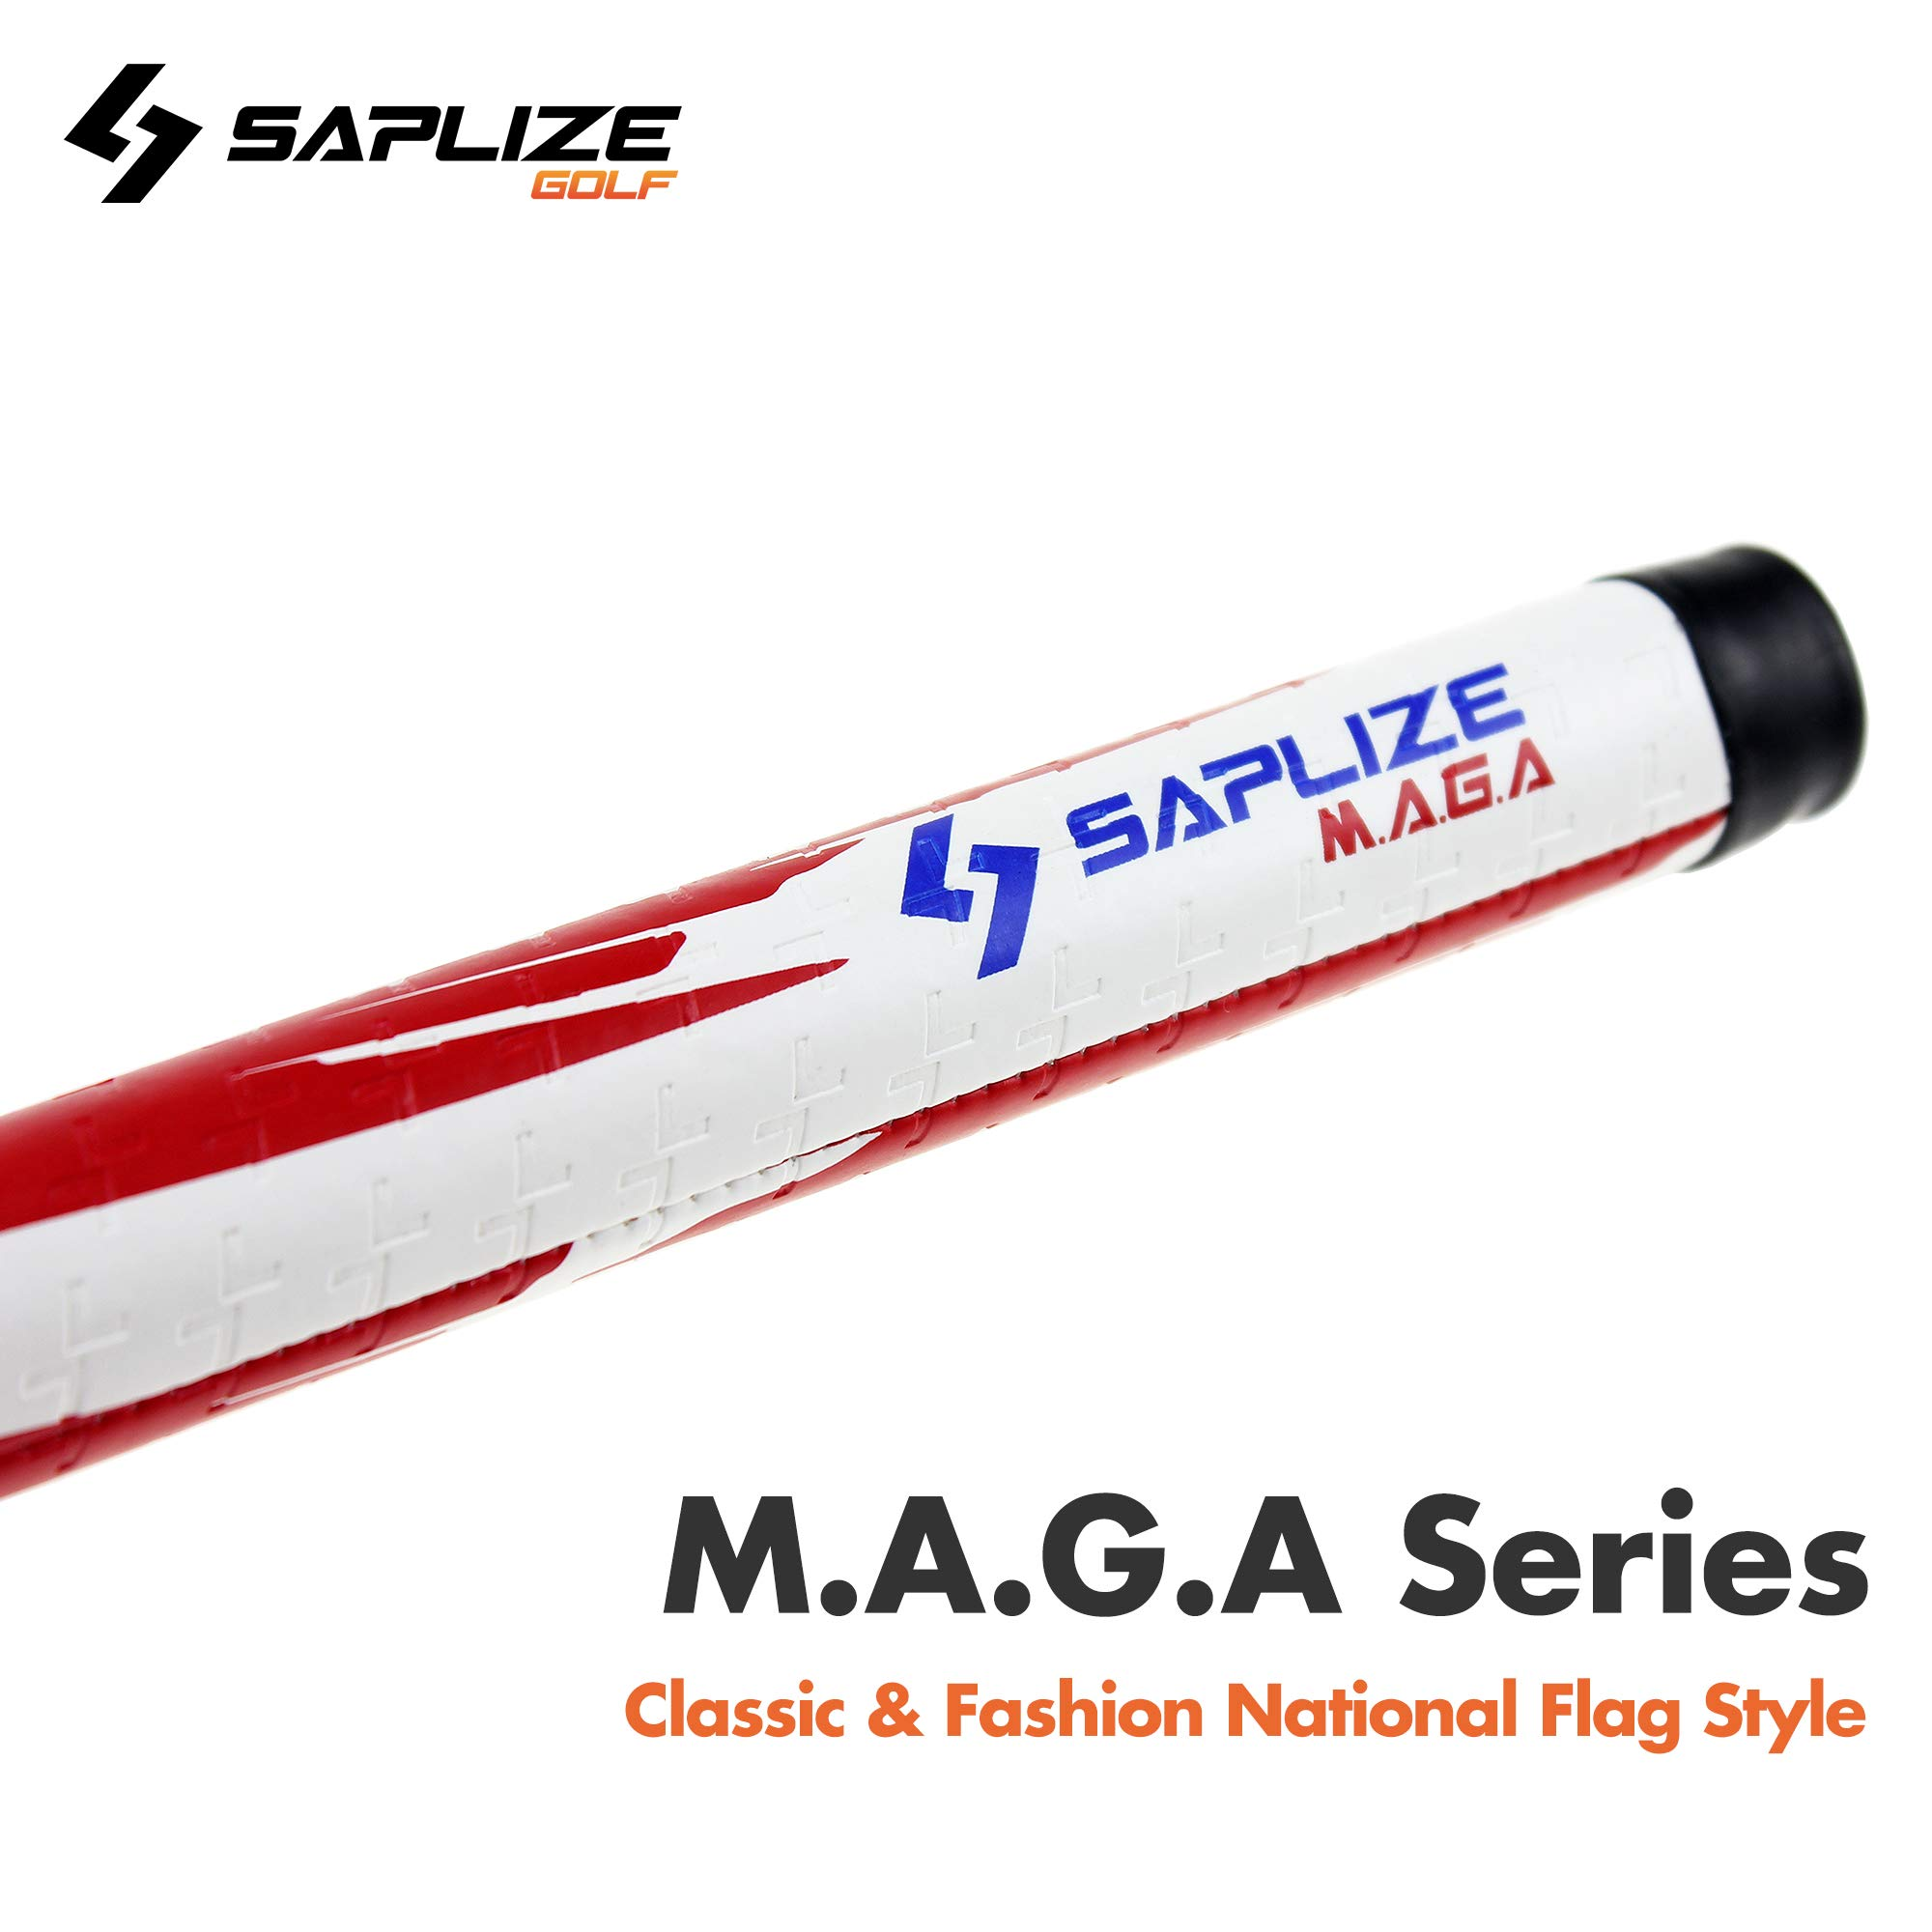 SAPLIZE Golf Club Grips for Irons and Woods, M.A.G.A. Series(PUST13), Standard Size, Set of 13 Grips by SAPLIZE (Image #3)